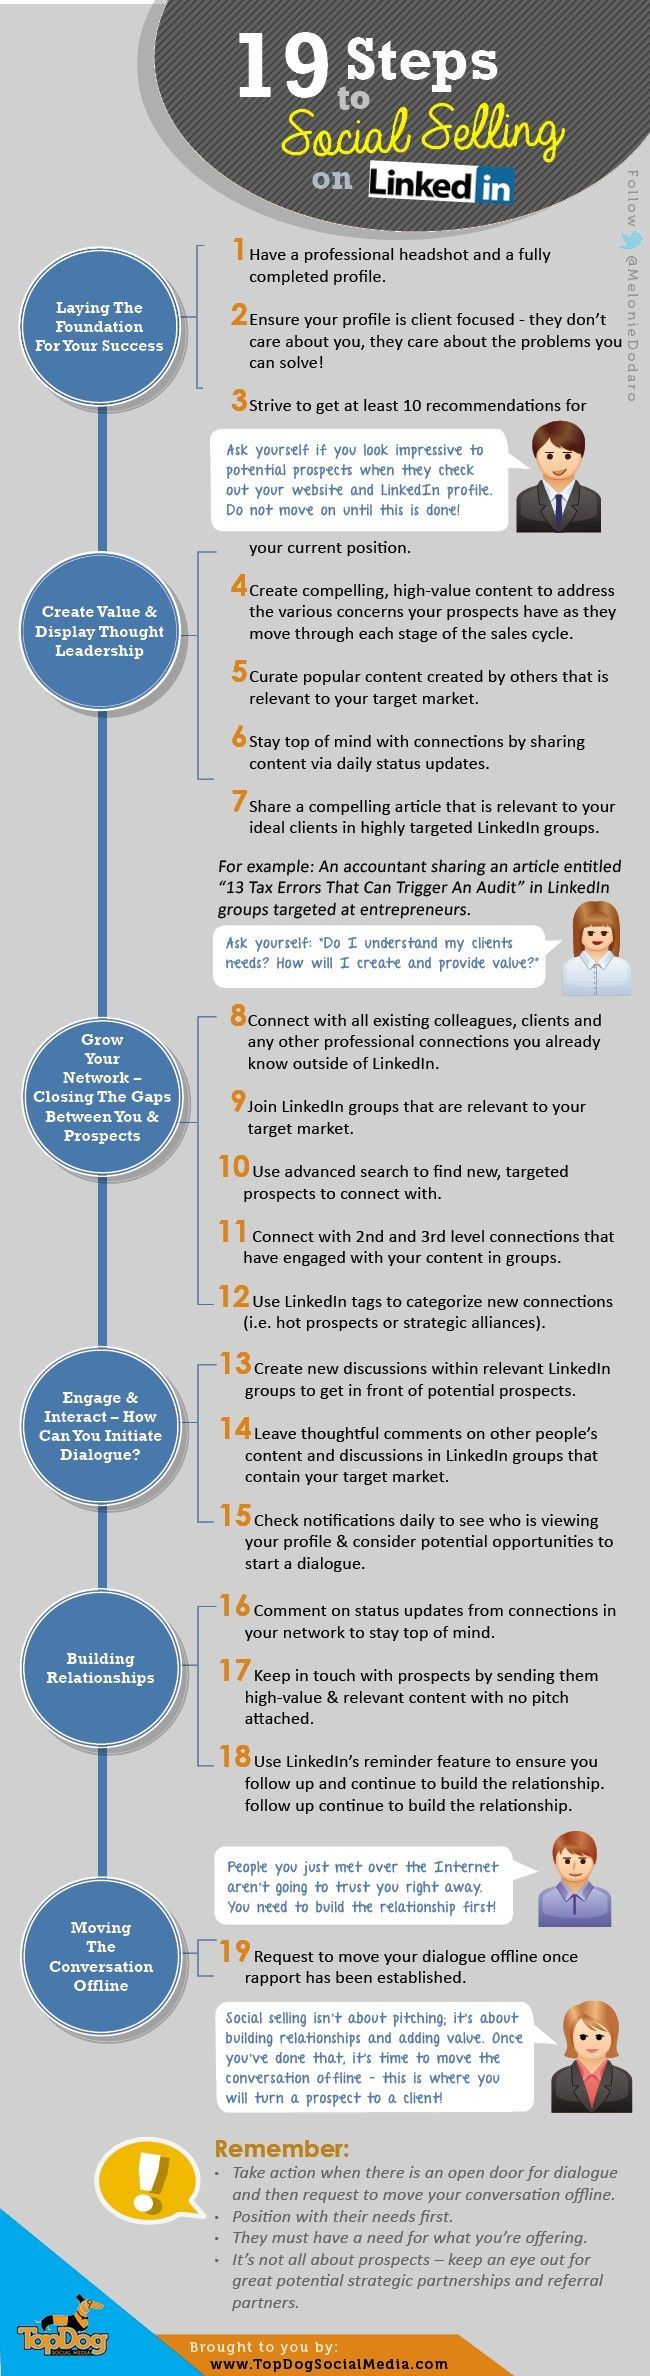 These 19 steps to social selling on LinkedIn are a great